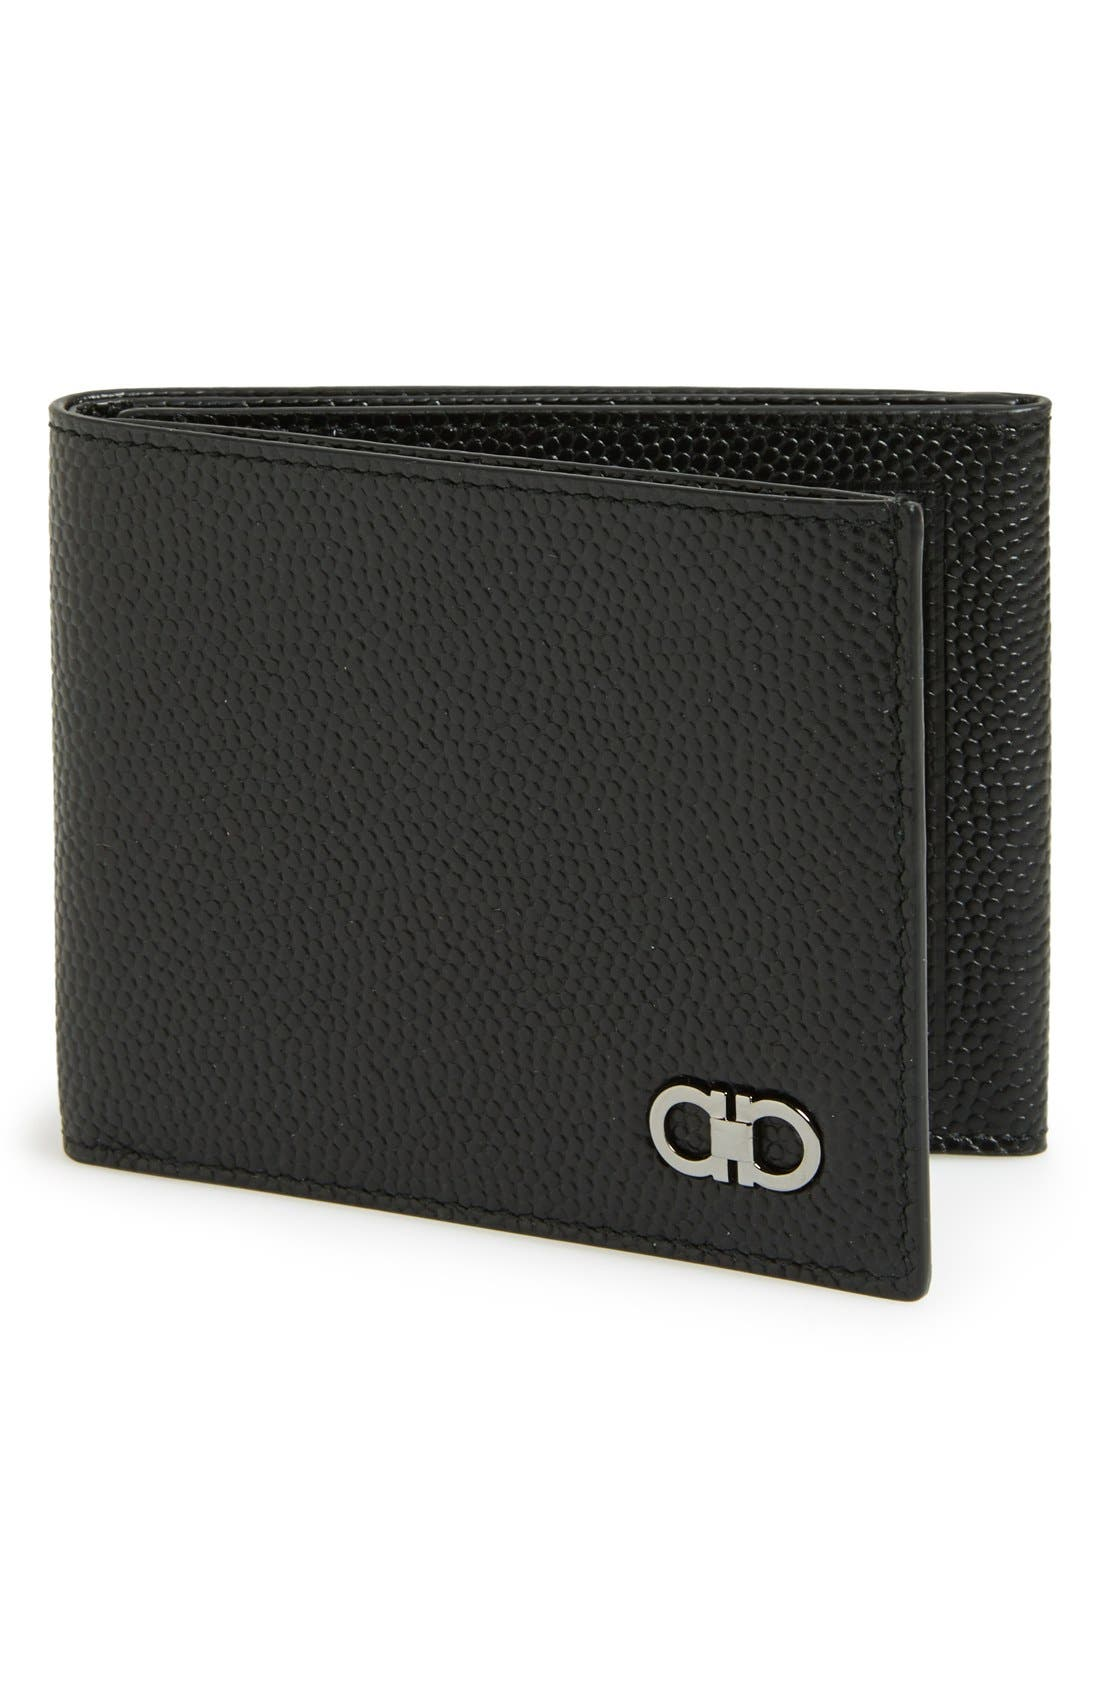 Alternate Image 1 Selected - Salvatore Ferragamo Trifold Wallet